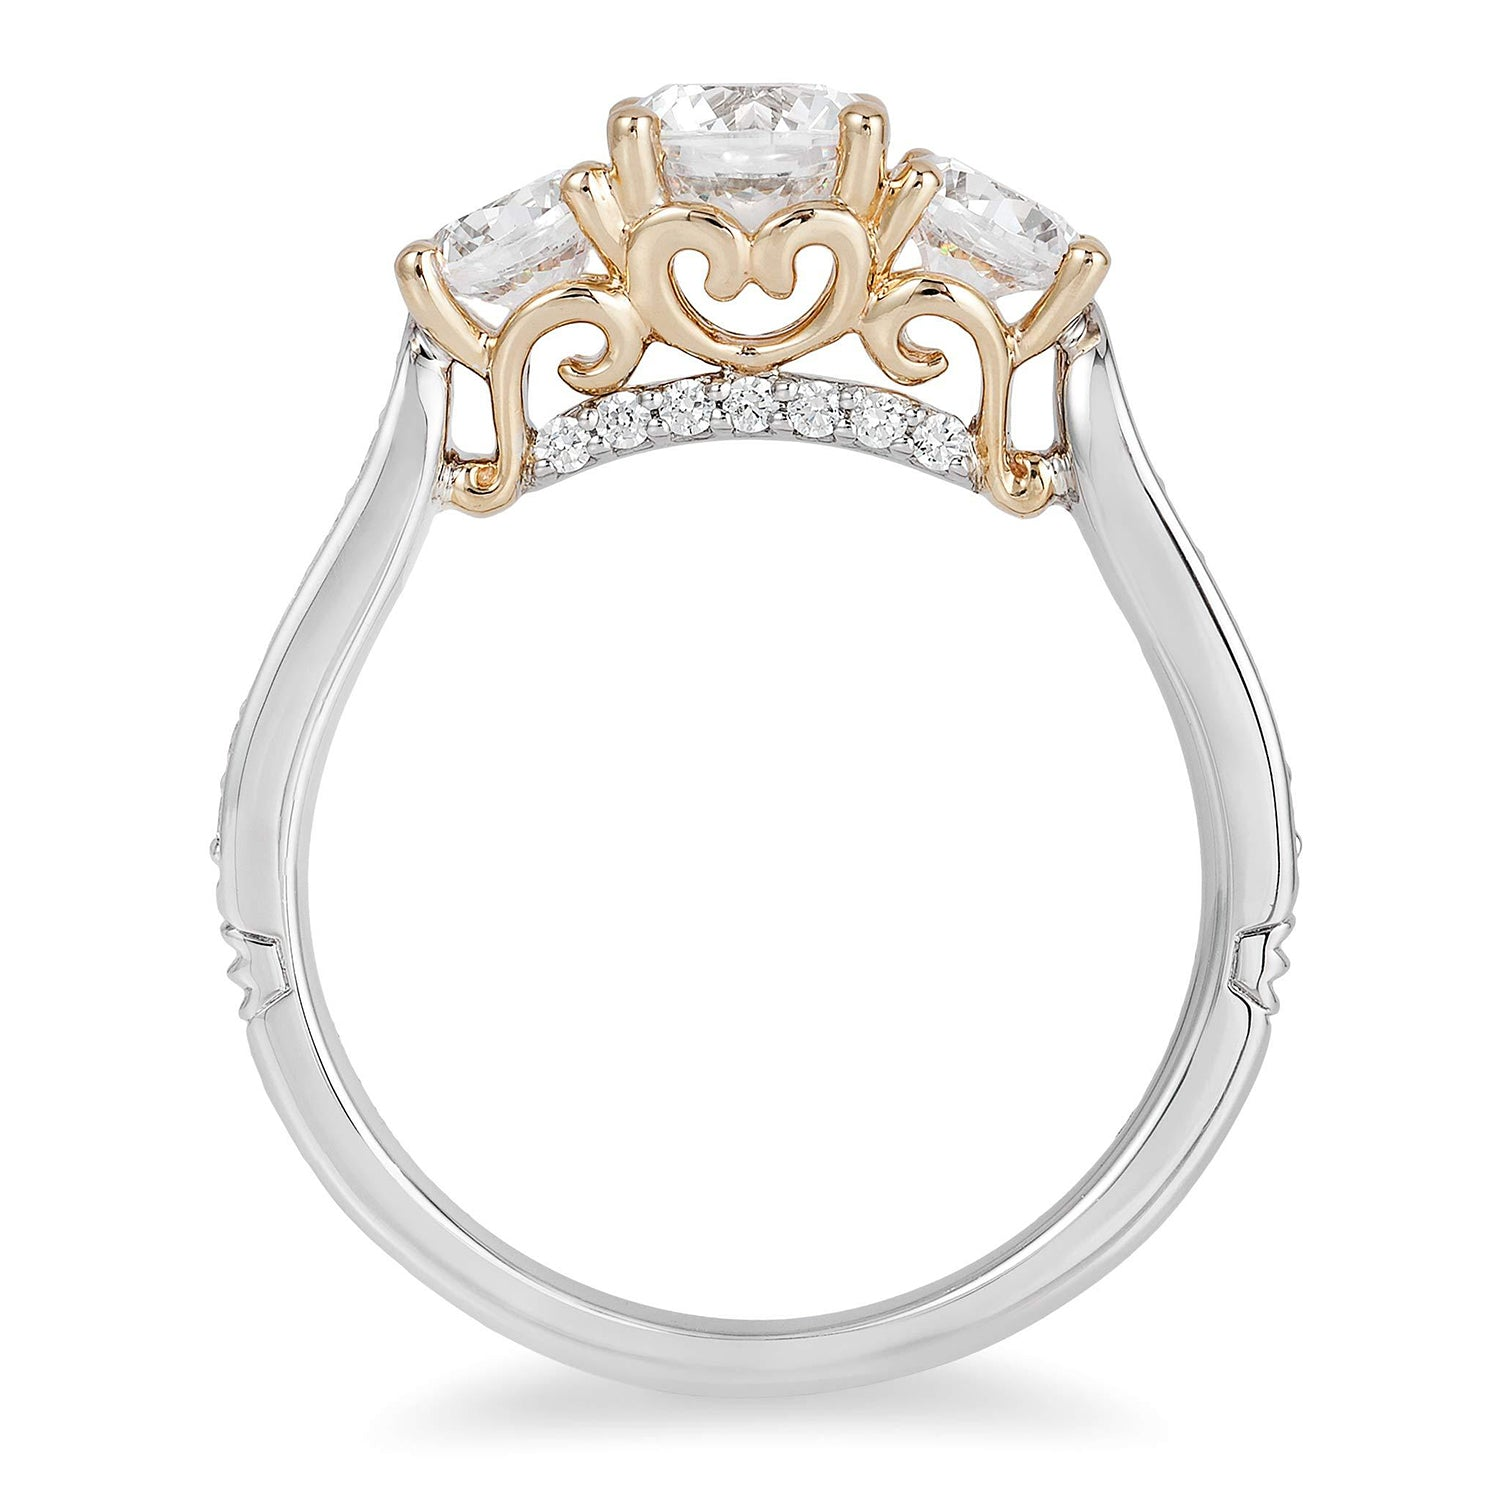 enchanted_disney-majestic-princess_bridal_ring-14k_white_and_yellow_gold_1/2CTTW_3